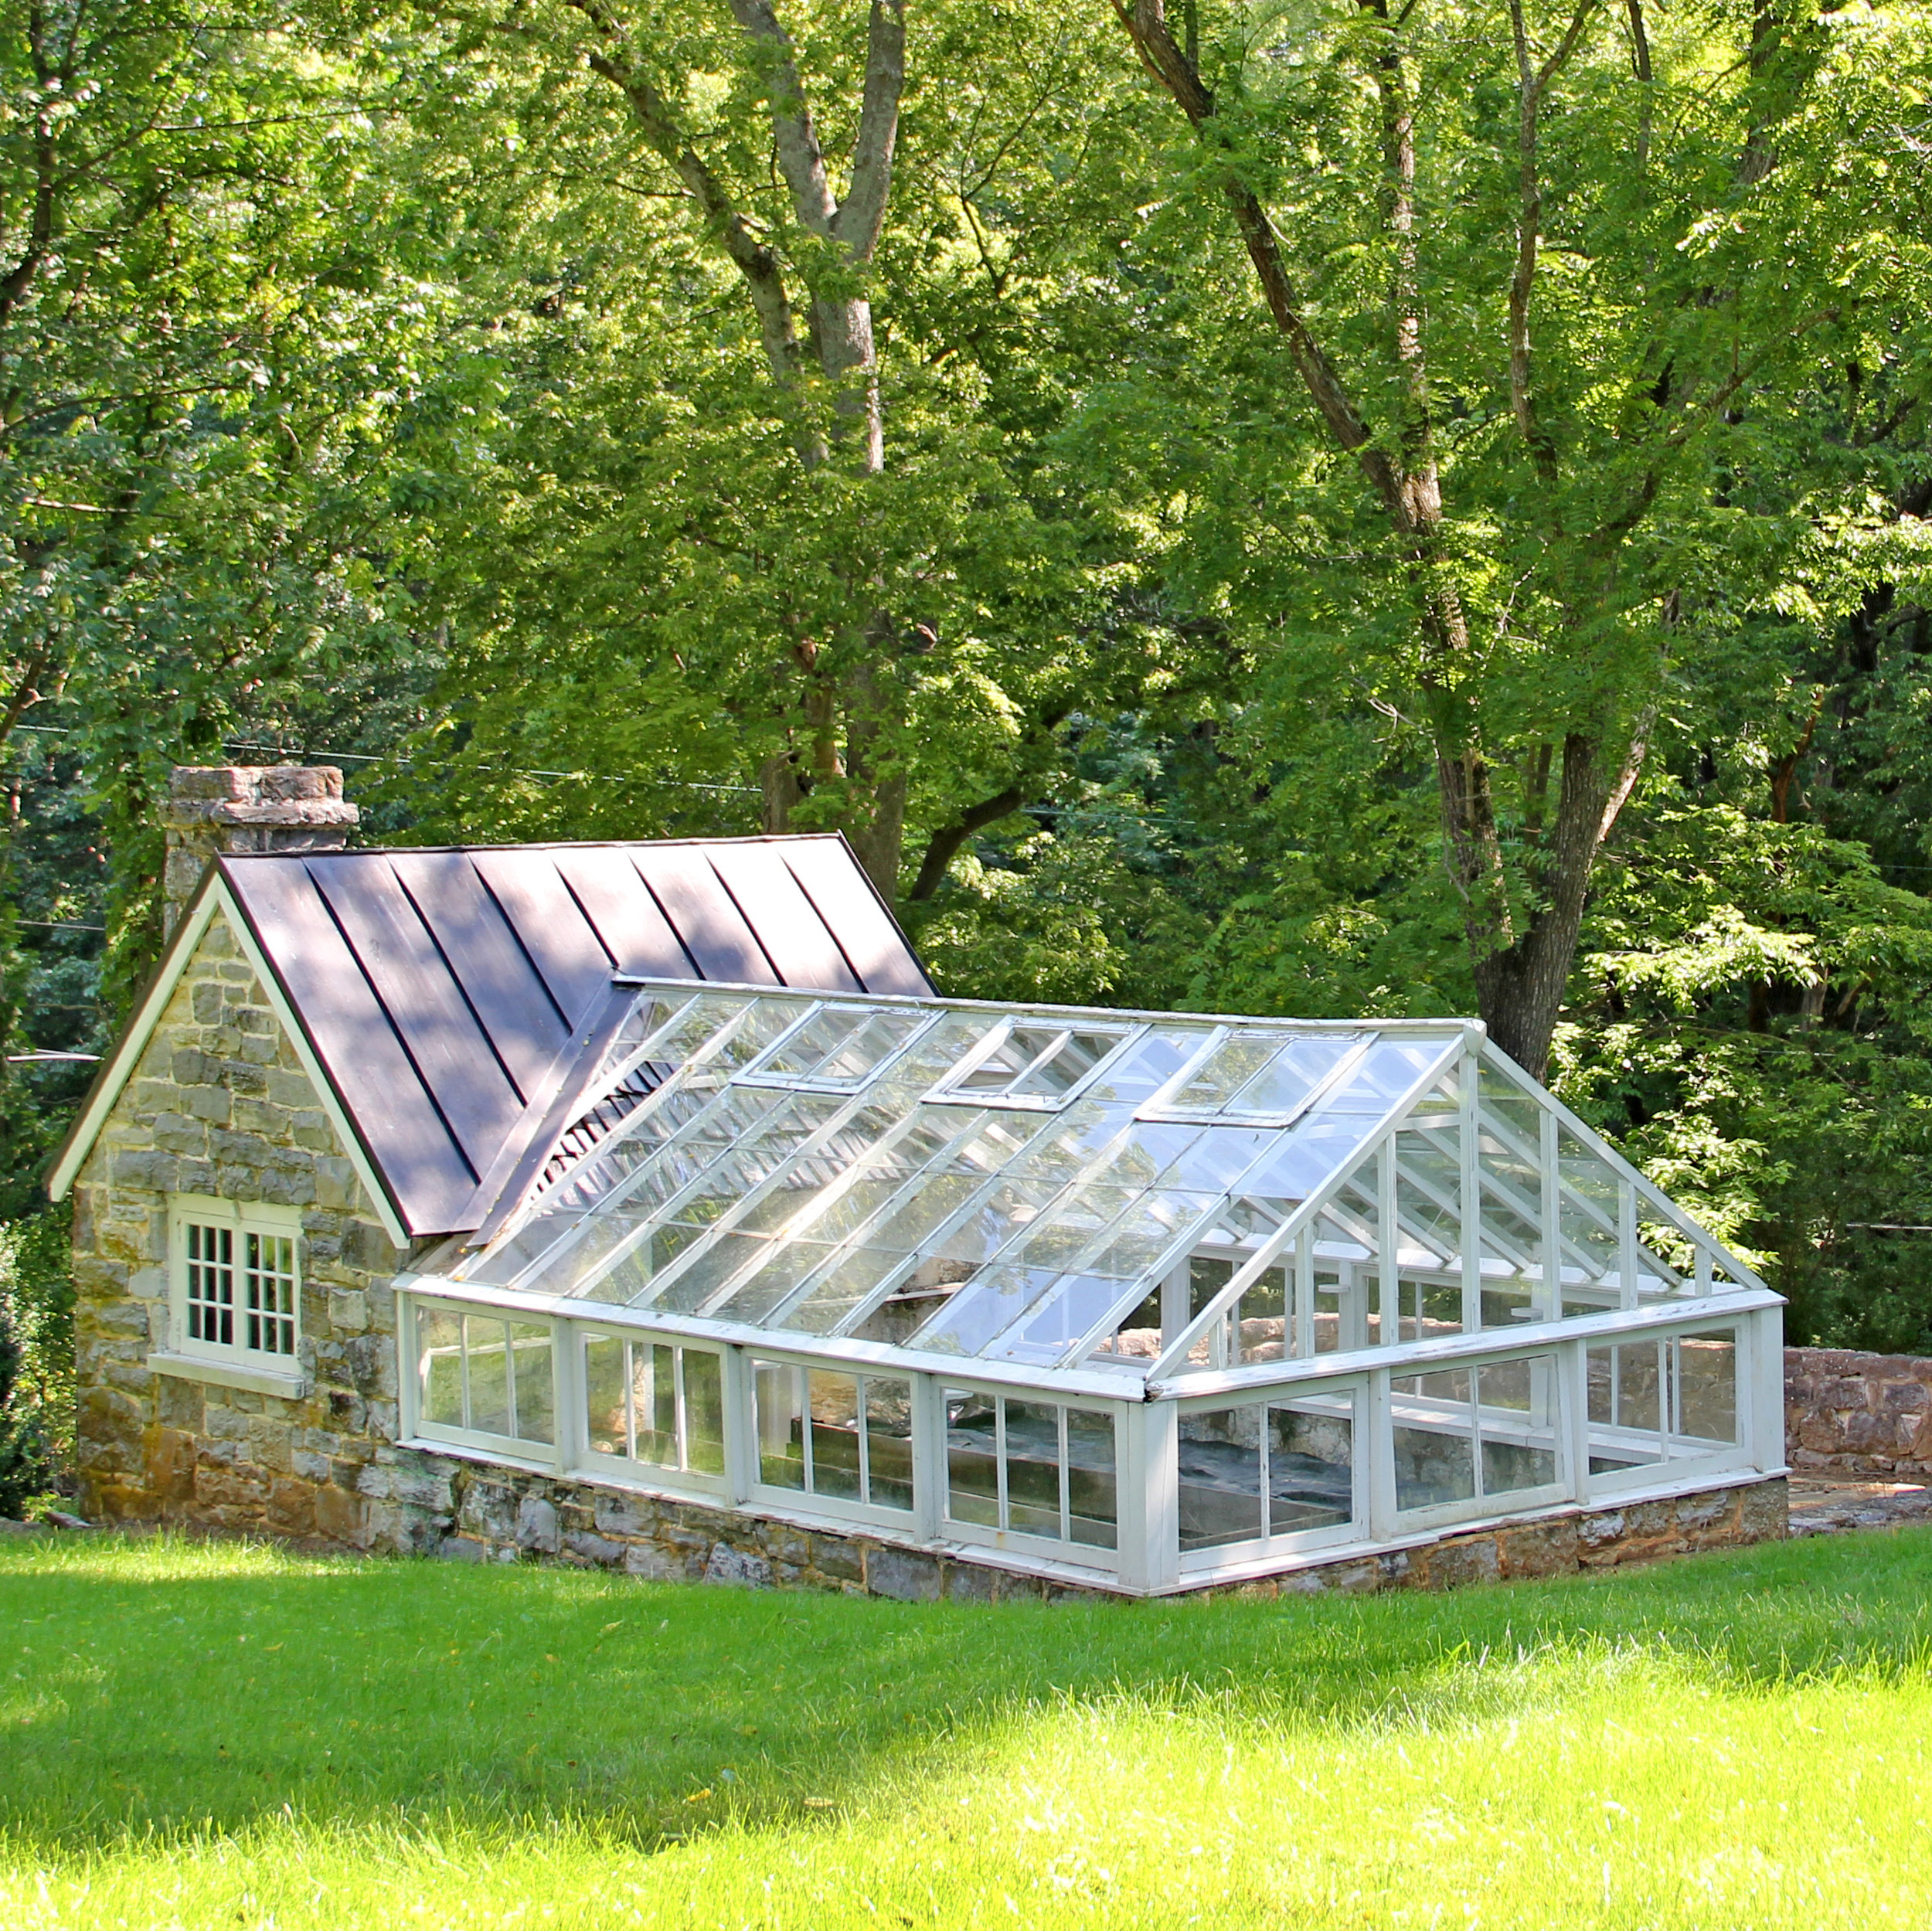 Bunny Mellon's greenhouse at Carter Hall in Millwood, Virginia.